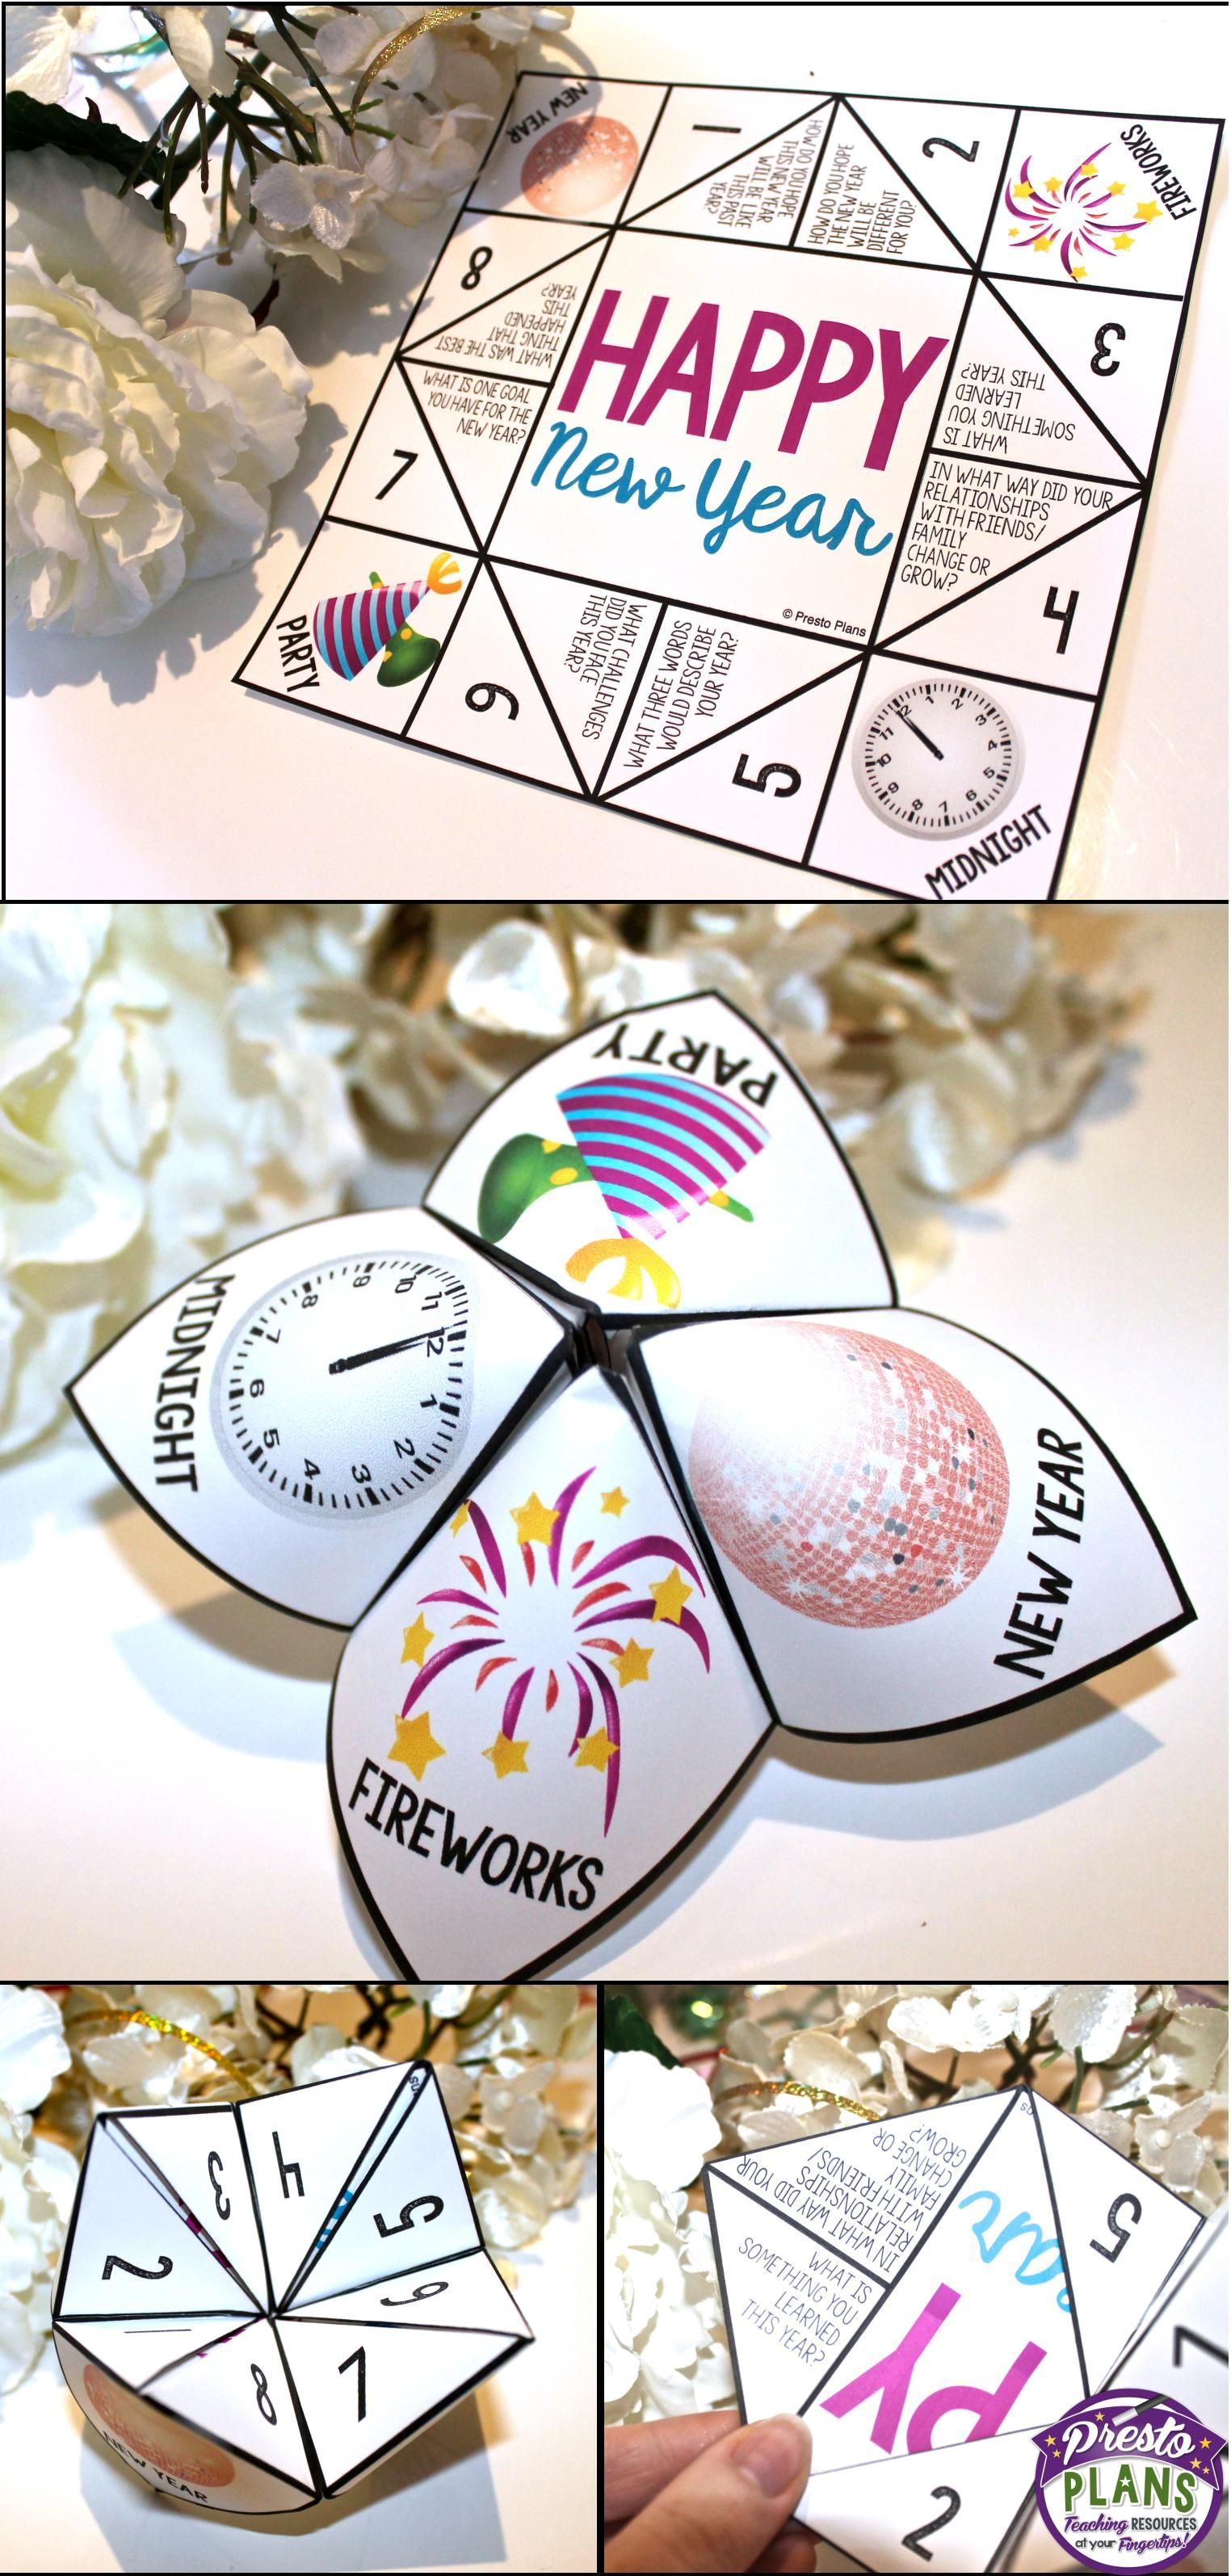 This fun New Year's activity will not only keep your students engaged, but will also help them reflect on the past year while also setting goals for the new year! This fortune teller/cootie-catcher can easily be folded by your students, and they can use it to ask each other questions that require reflection.